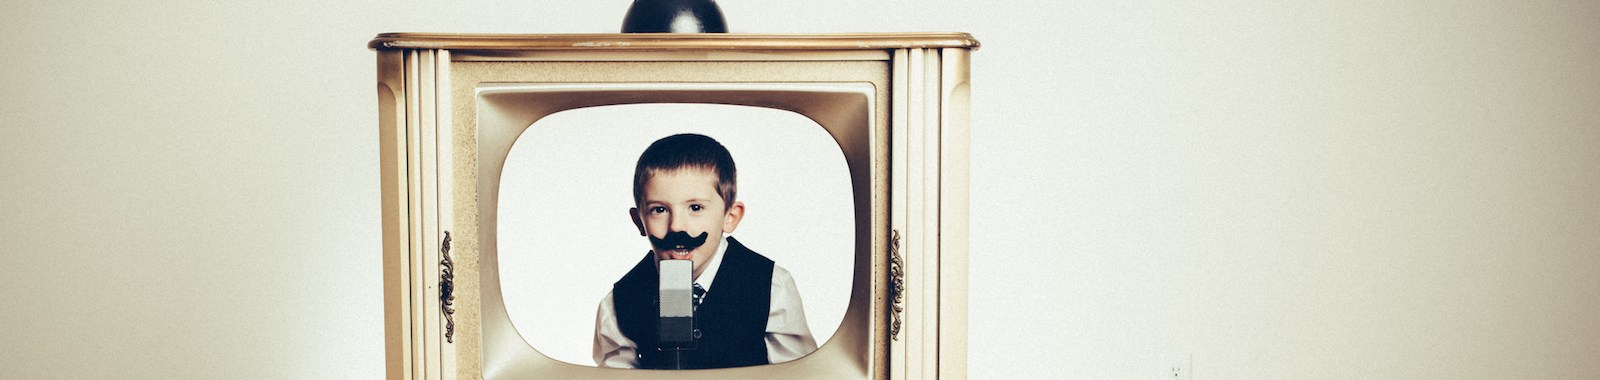 Preschool Child Playing Anchorman in Old TV